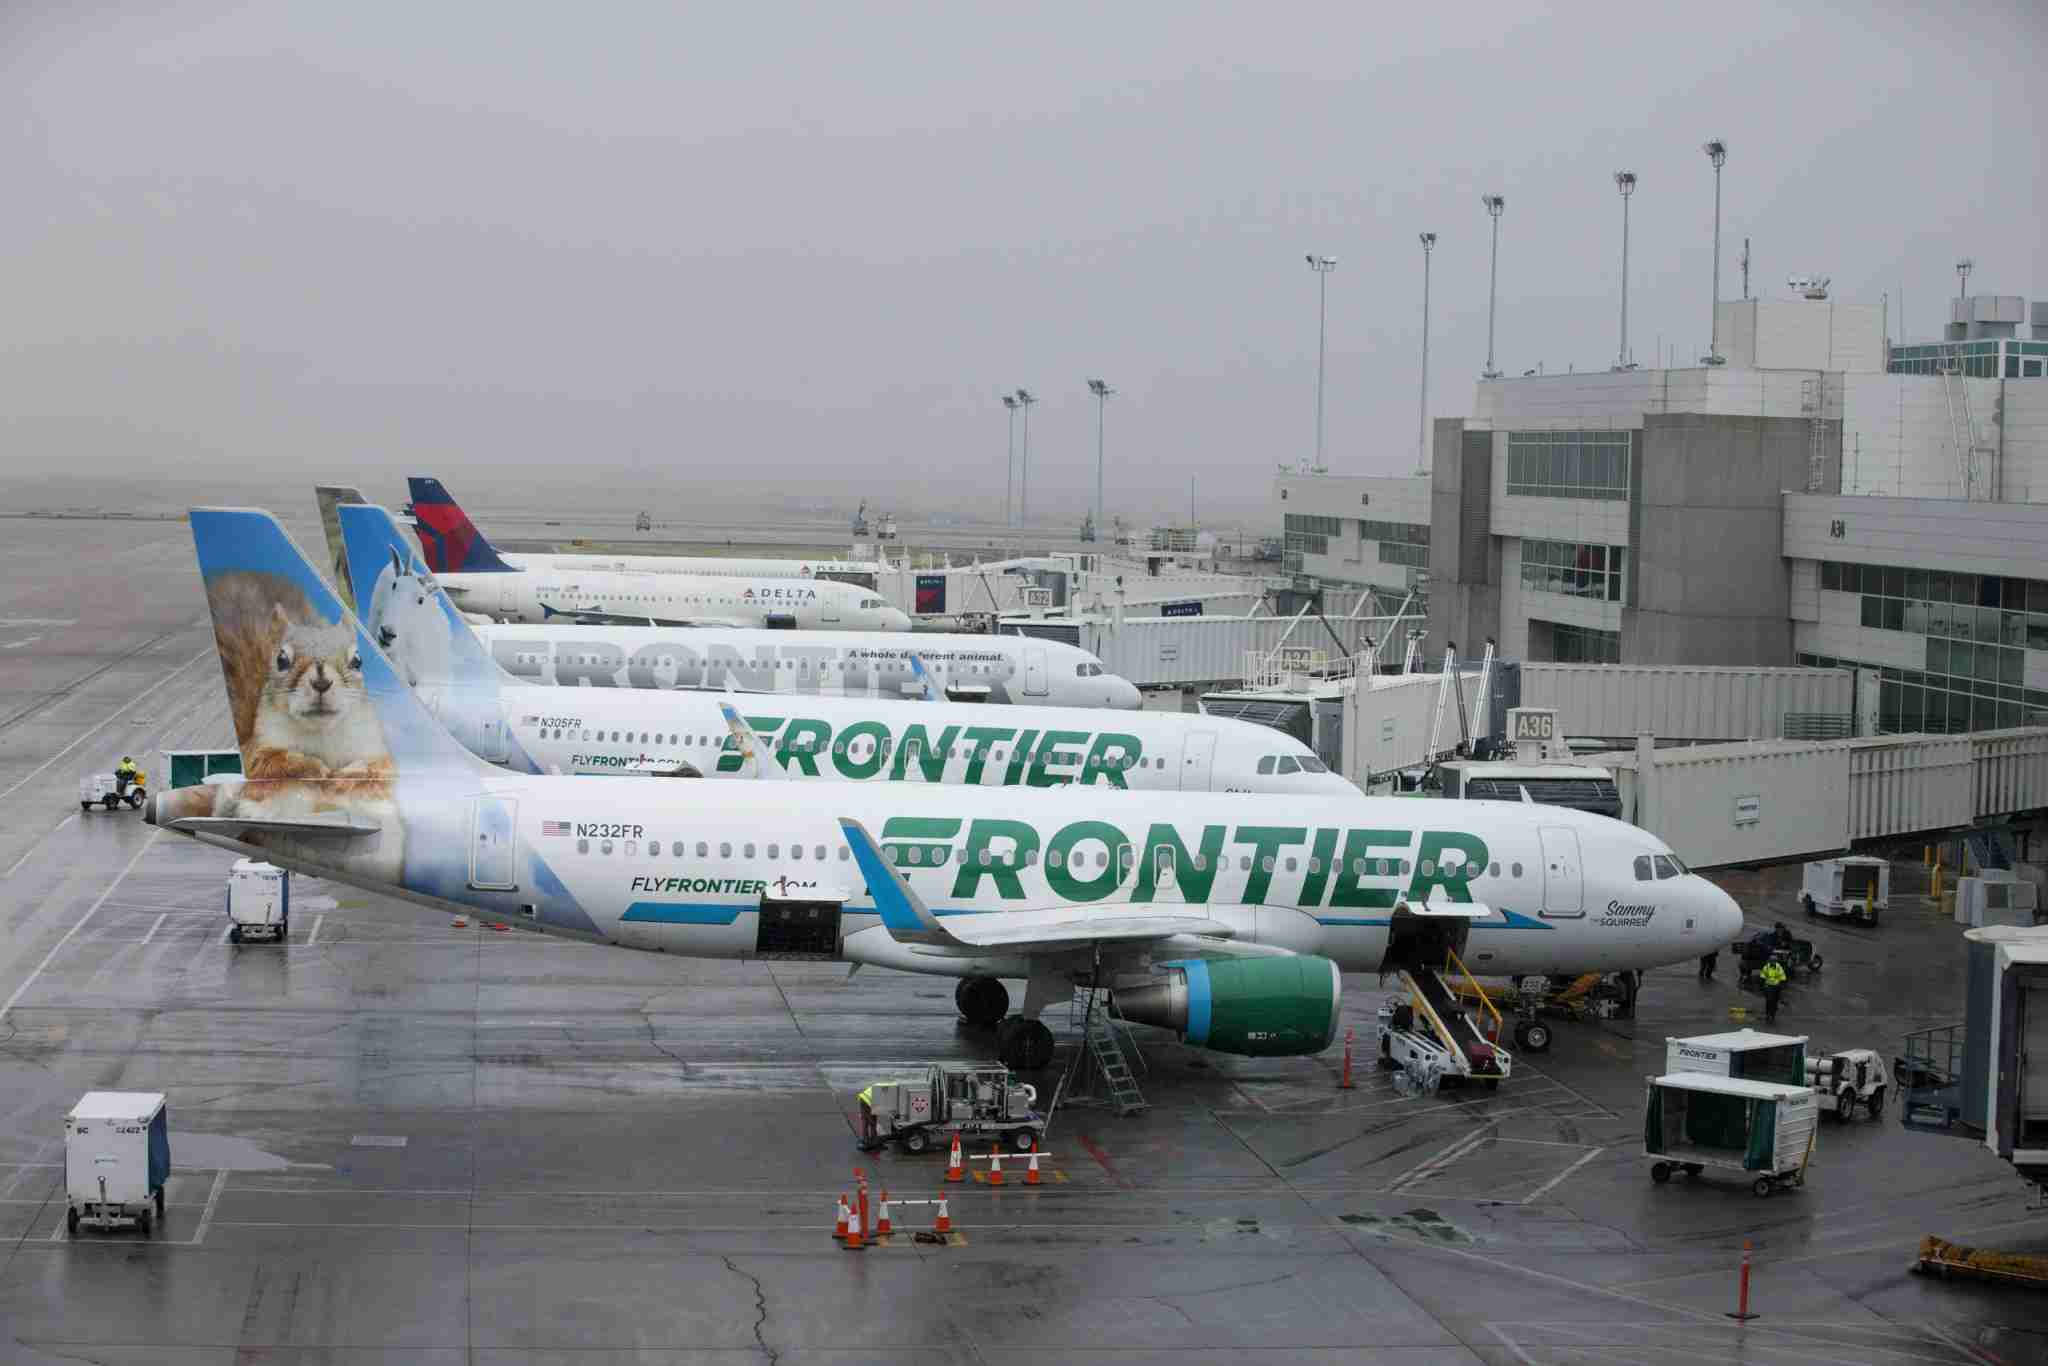 Frontier Airlines Inc. planes sit at gates at Denver International Airport (DIA) in Denver, Colorado, U.S., on Tuesday, April 4, 2017. Frontier Airlines Inc., the no-frills U.S. carrier whose aircraft feature animals on the tails, is aiming to go public as soon as the second quarter, people with knowledge of the matter said. Photographer: Matt Staver/Bloomberg via Getty Images